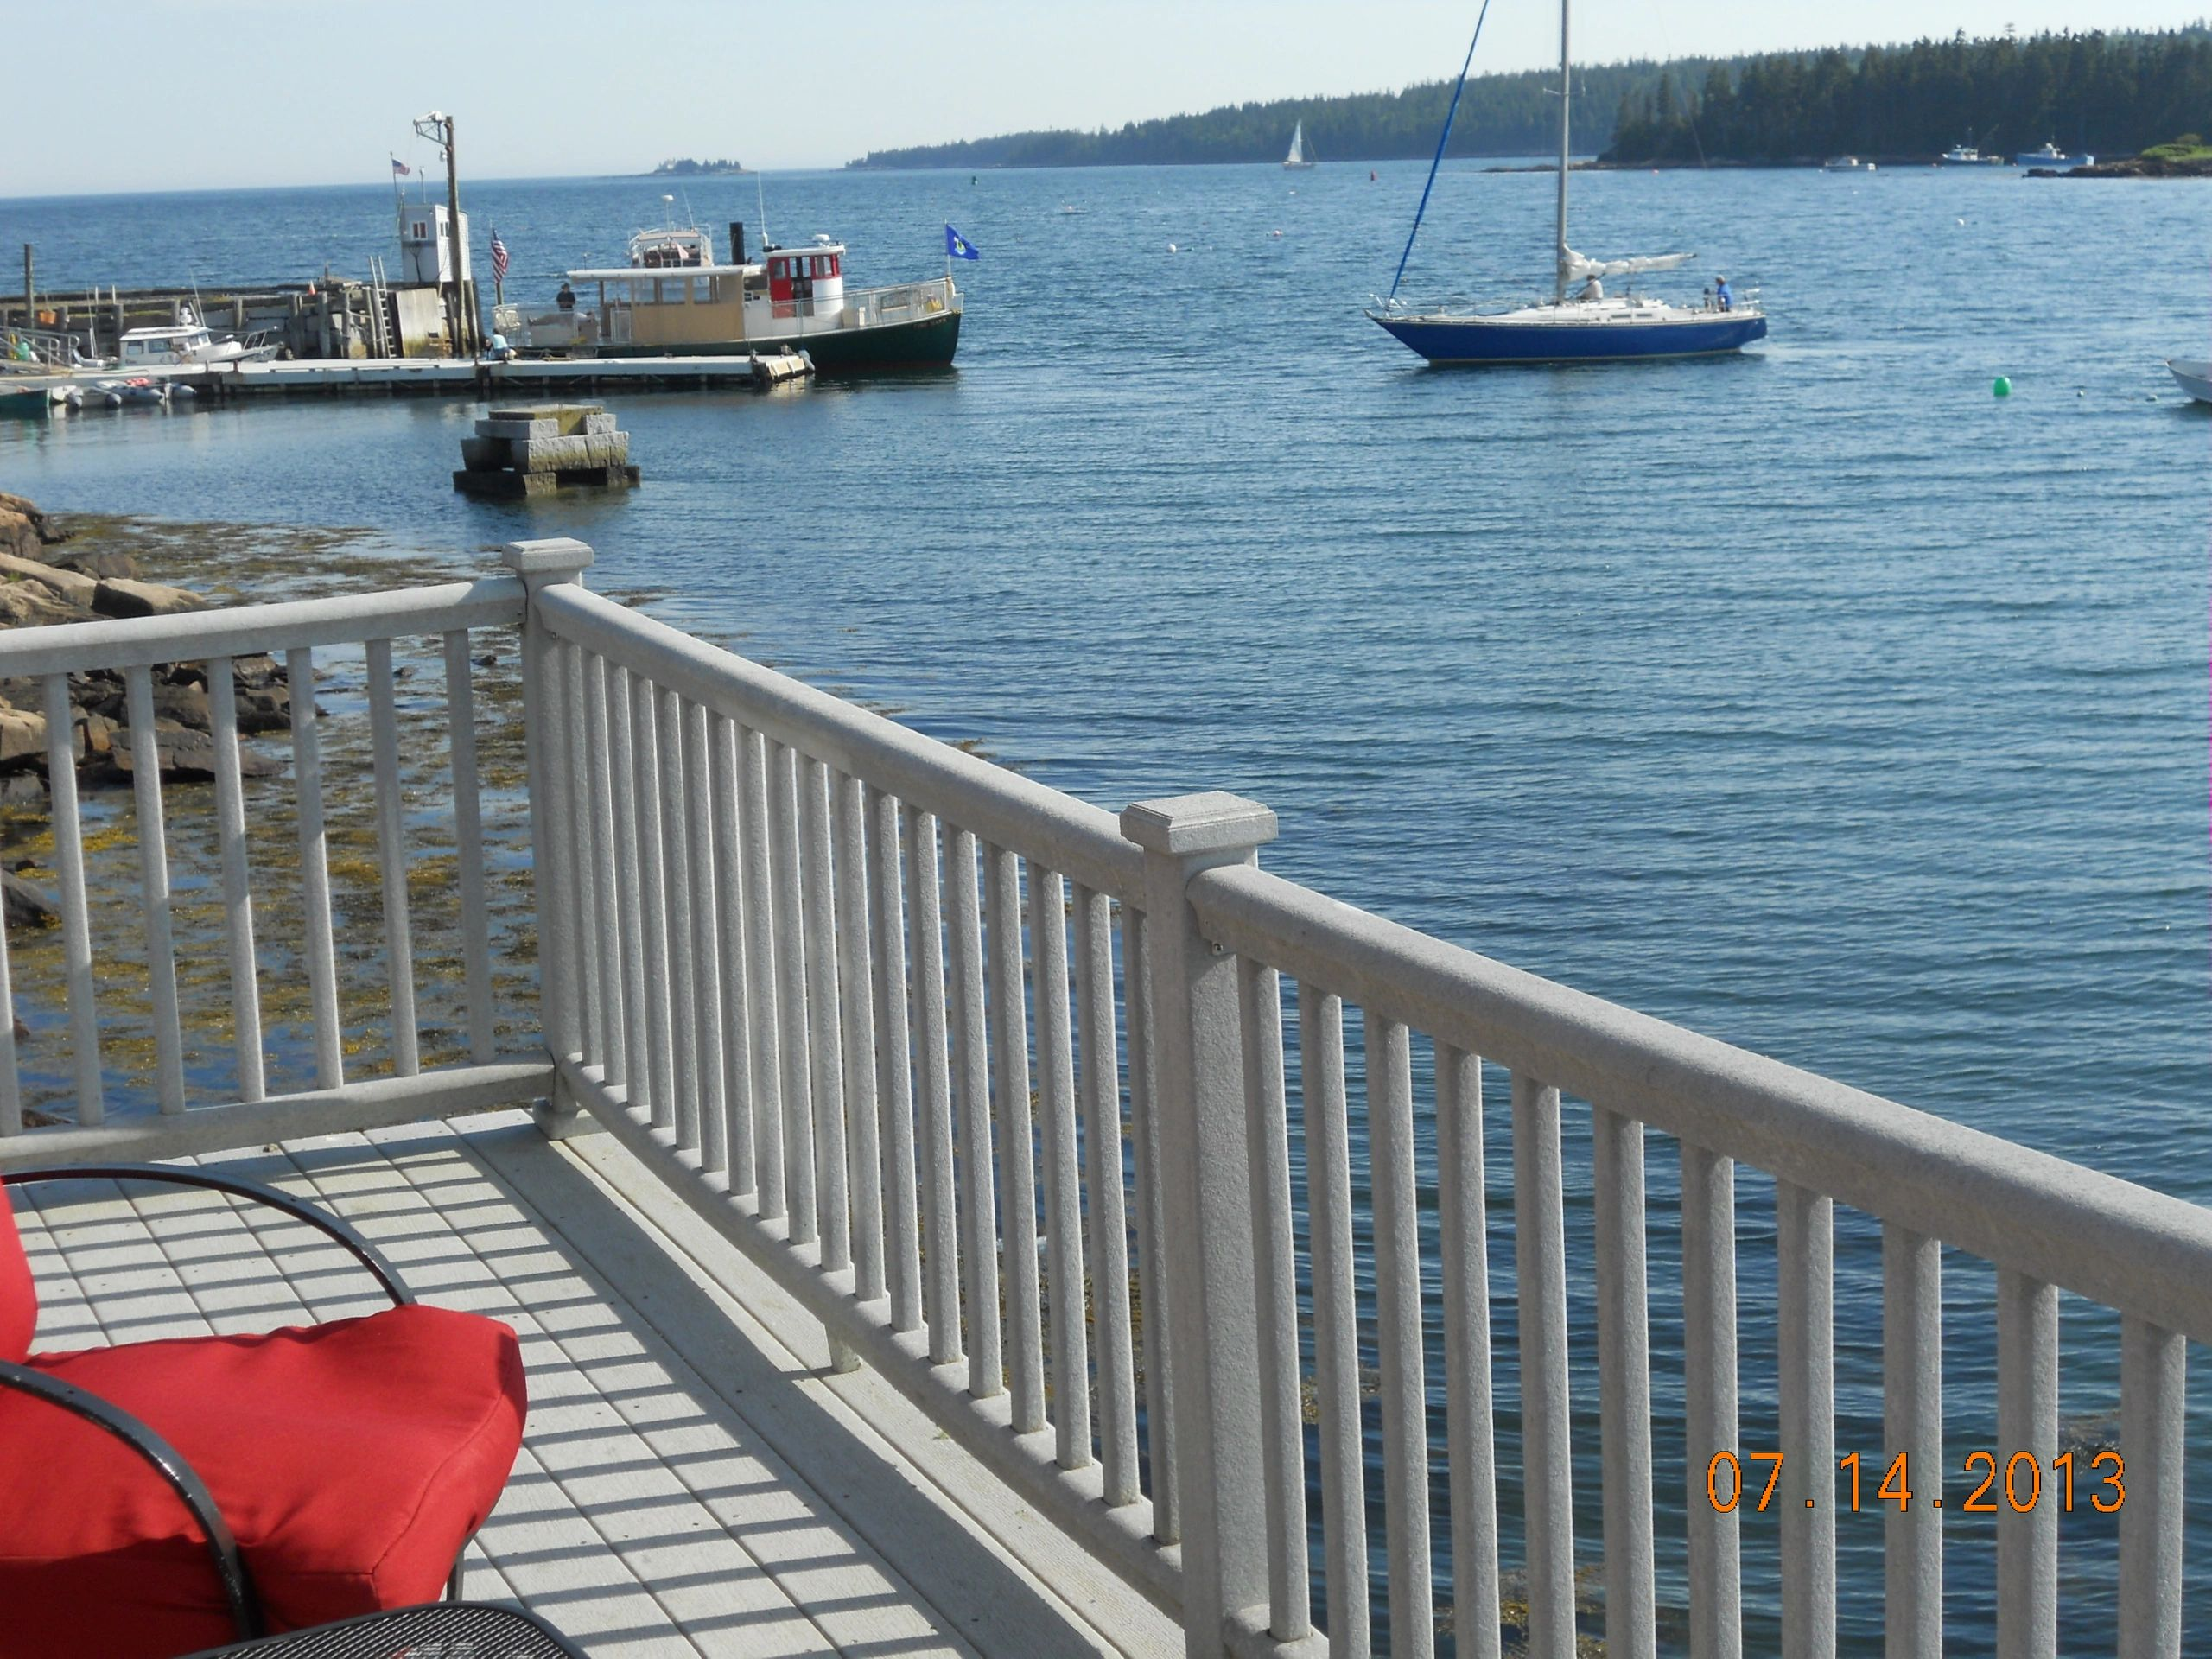 Boathouse Deck view